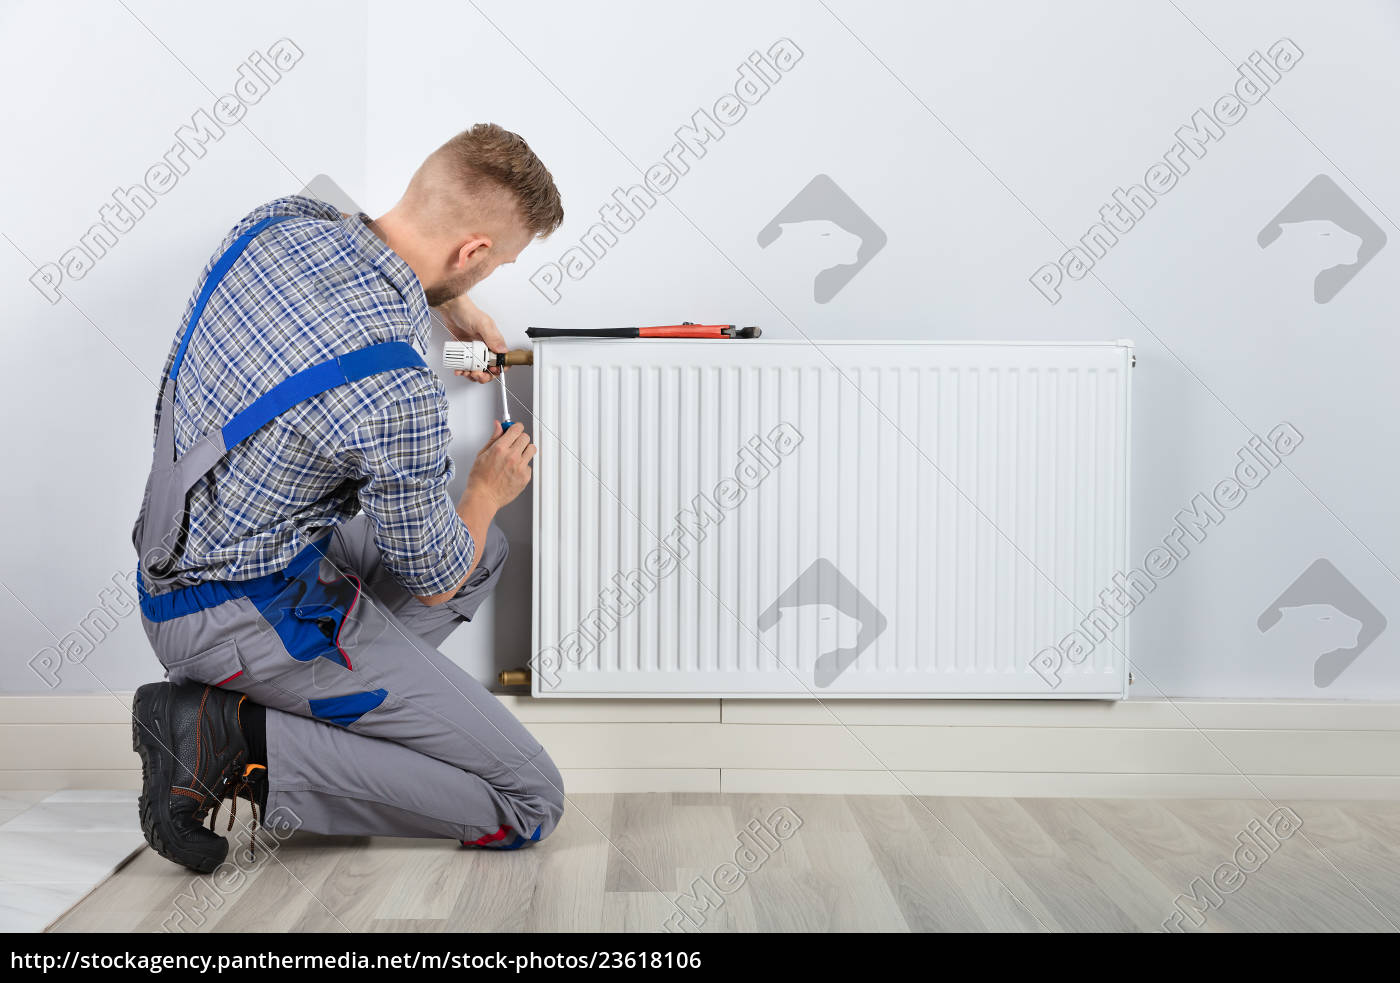 male, plumber, fixing, thermostat - 23618106